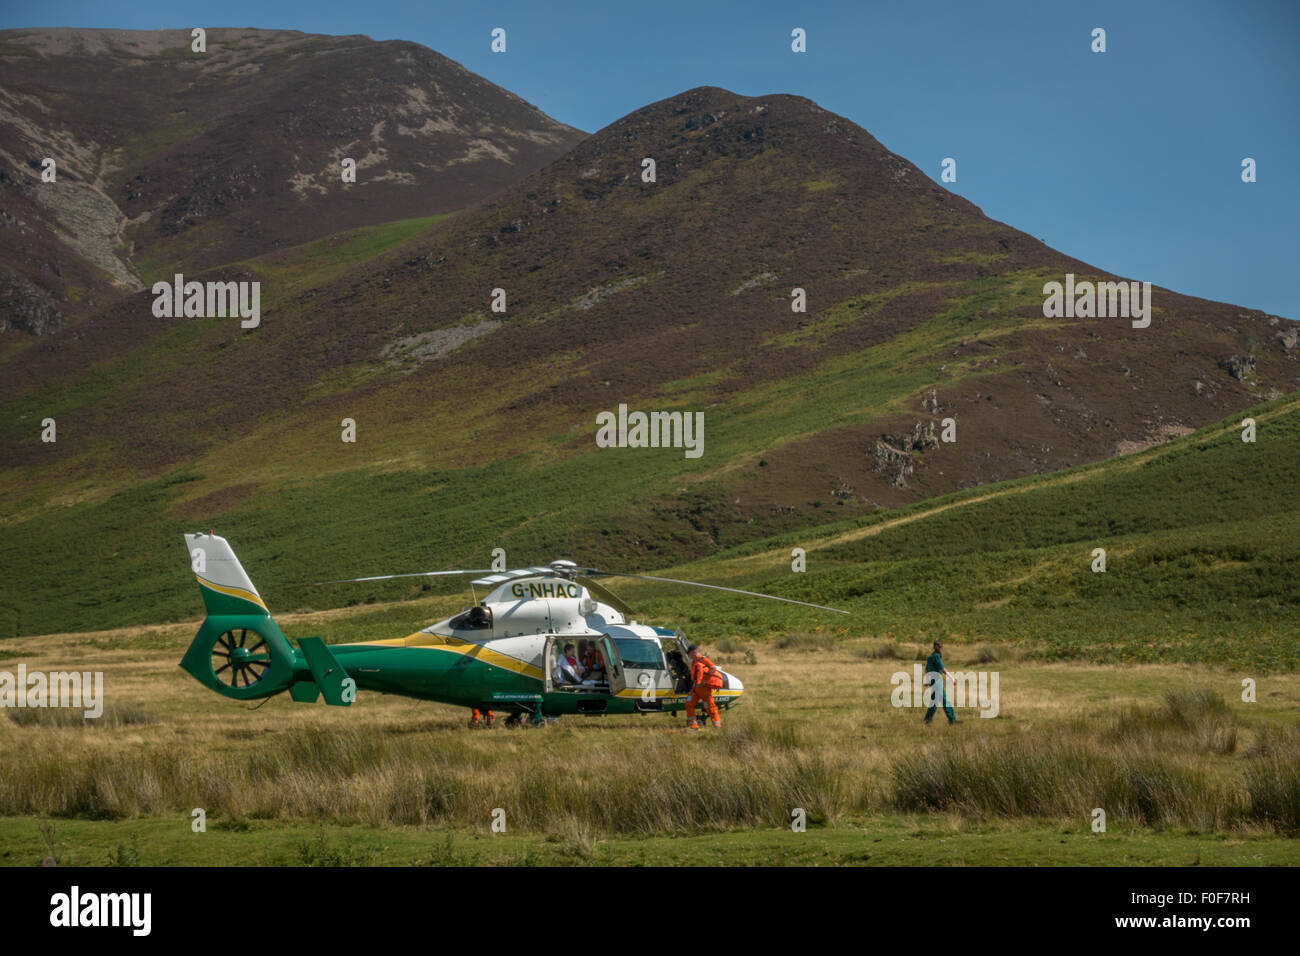 Great North Air Ambulance with a patient in the helicopter - on call in Buttermere, Cumbria. - Stock Image